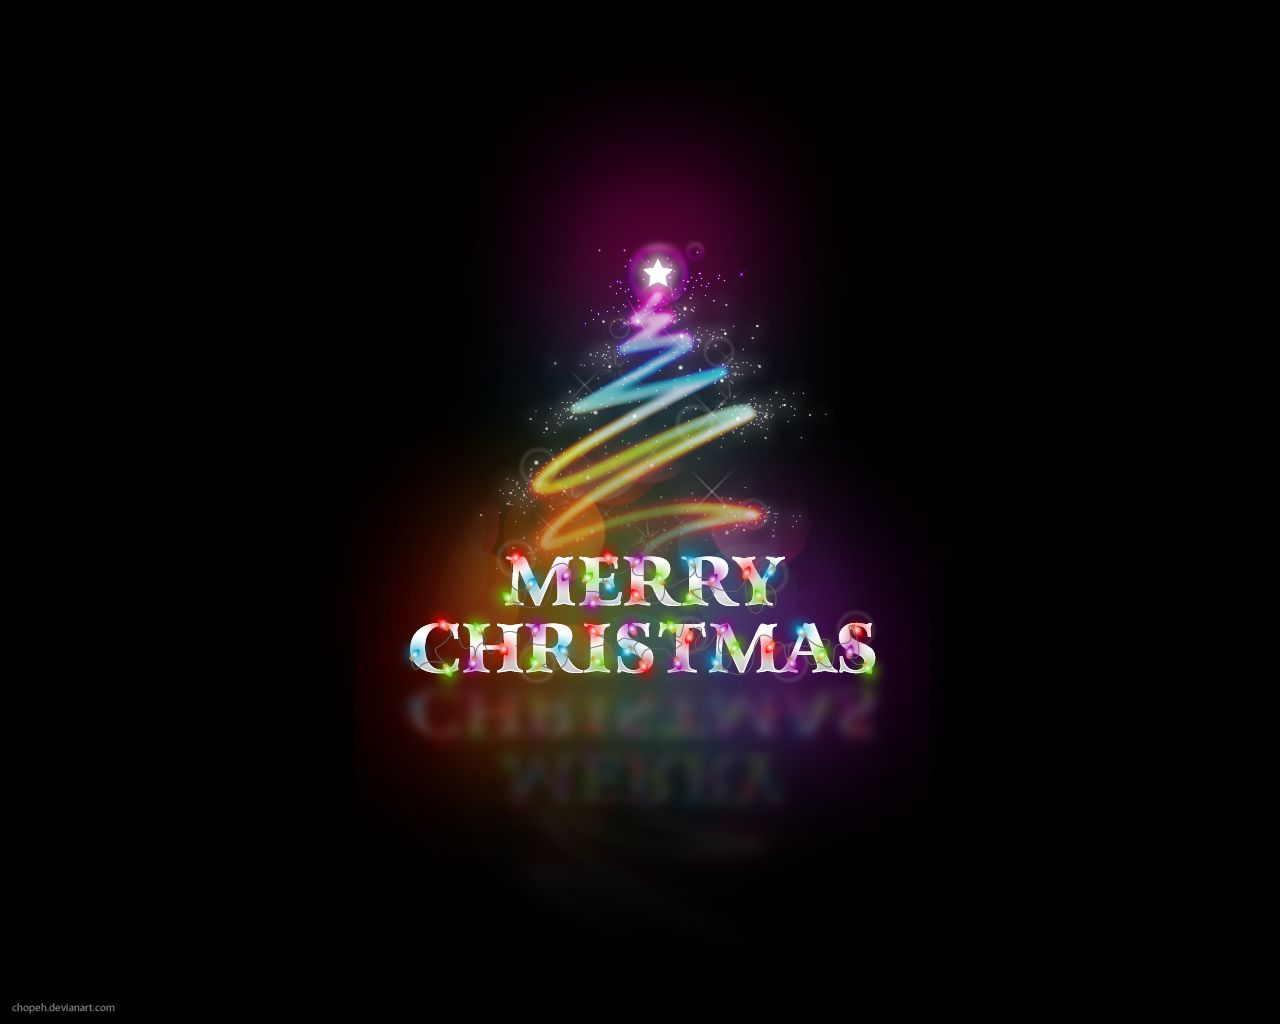 Merry christmas from best meet and greet parking company at london merry christmas from best meet and greet parking company at london gatwick airport kristyandbryce Choice Image